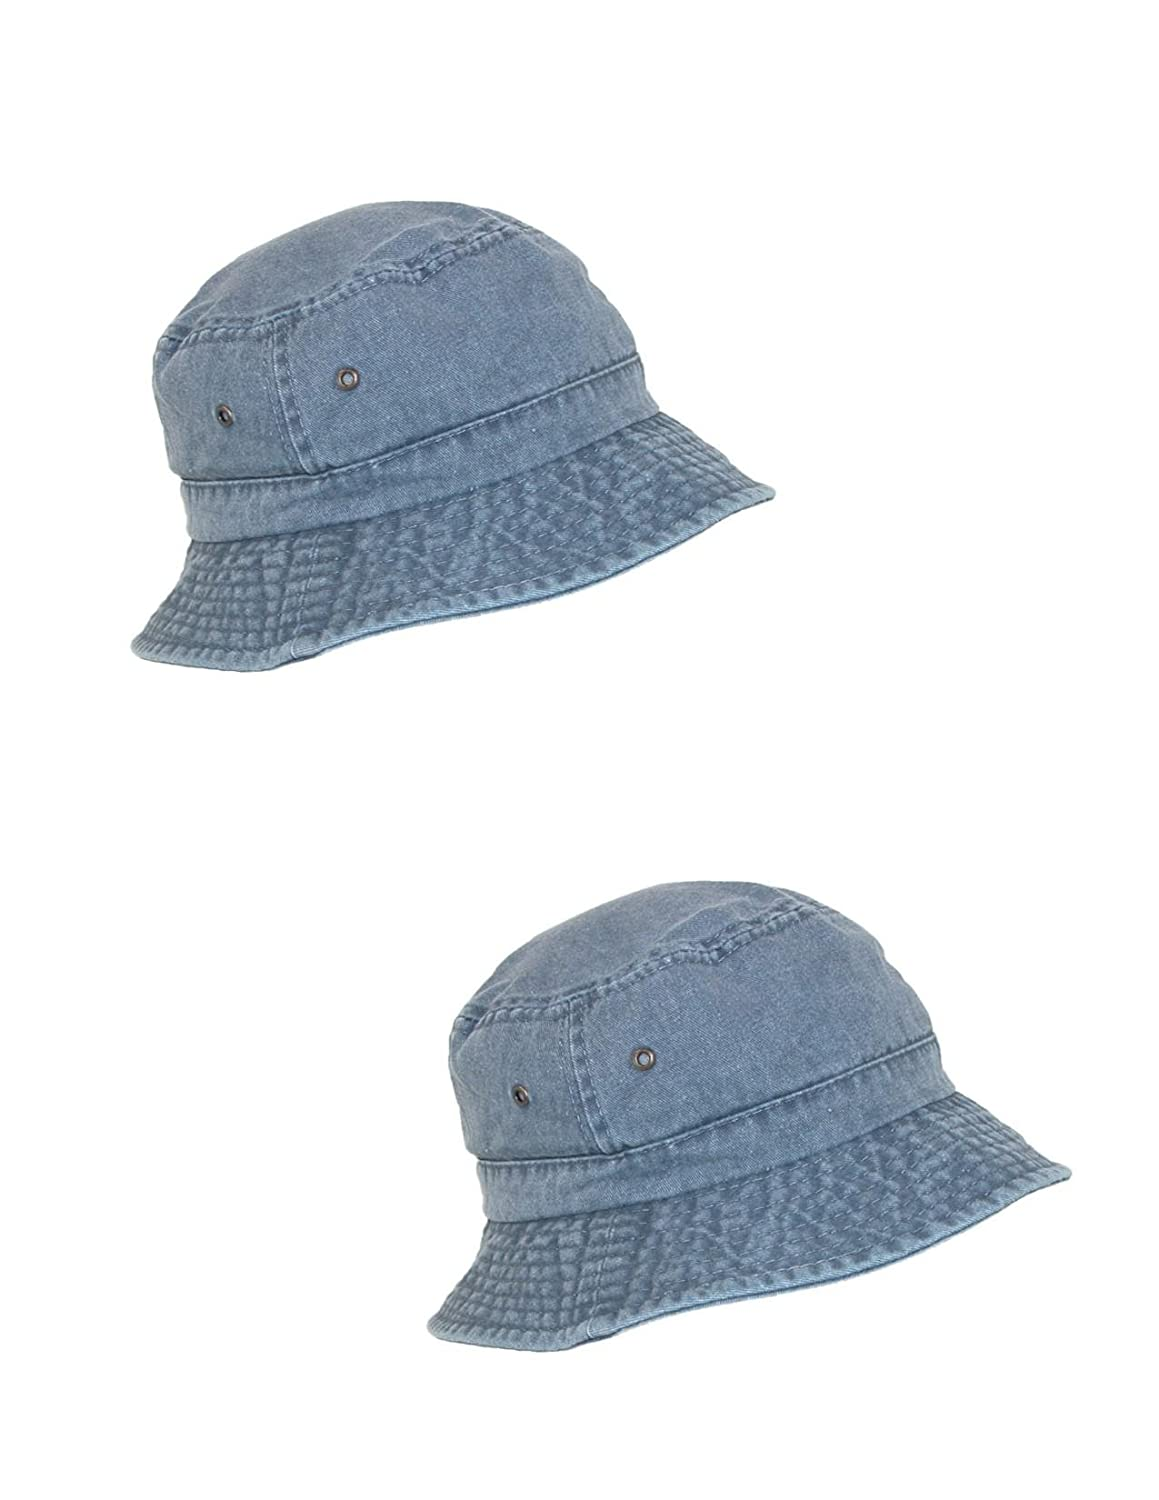 8c5e9a6cf2c Scala Classico Cotton Washed Sun Bucket Hat (Pack of 2) at Amazon Men s  Clothing store